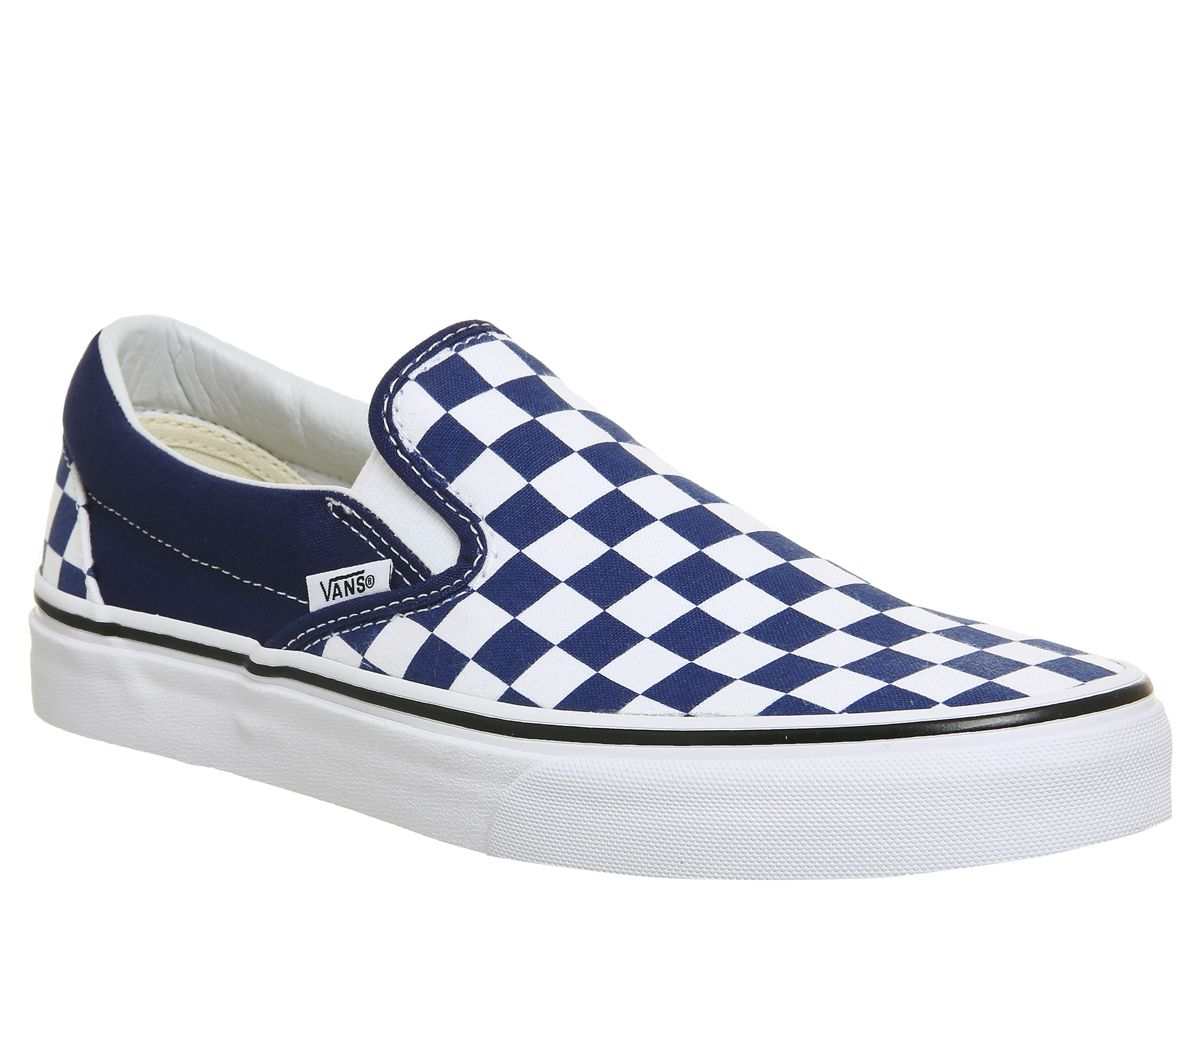 224f2d5c5188dc Vans Vans Classic Slip On Trainers Estate Blue White Checkerboard ...